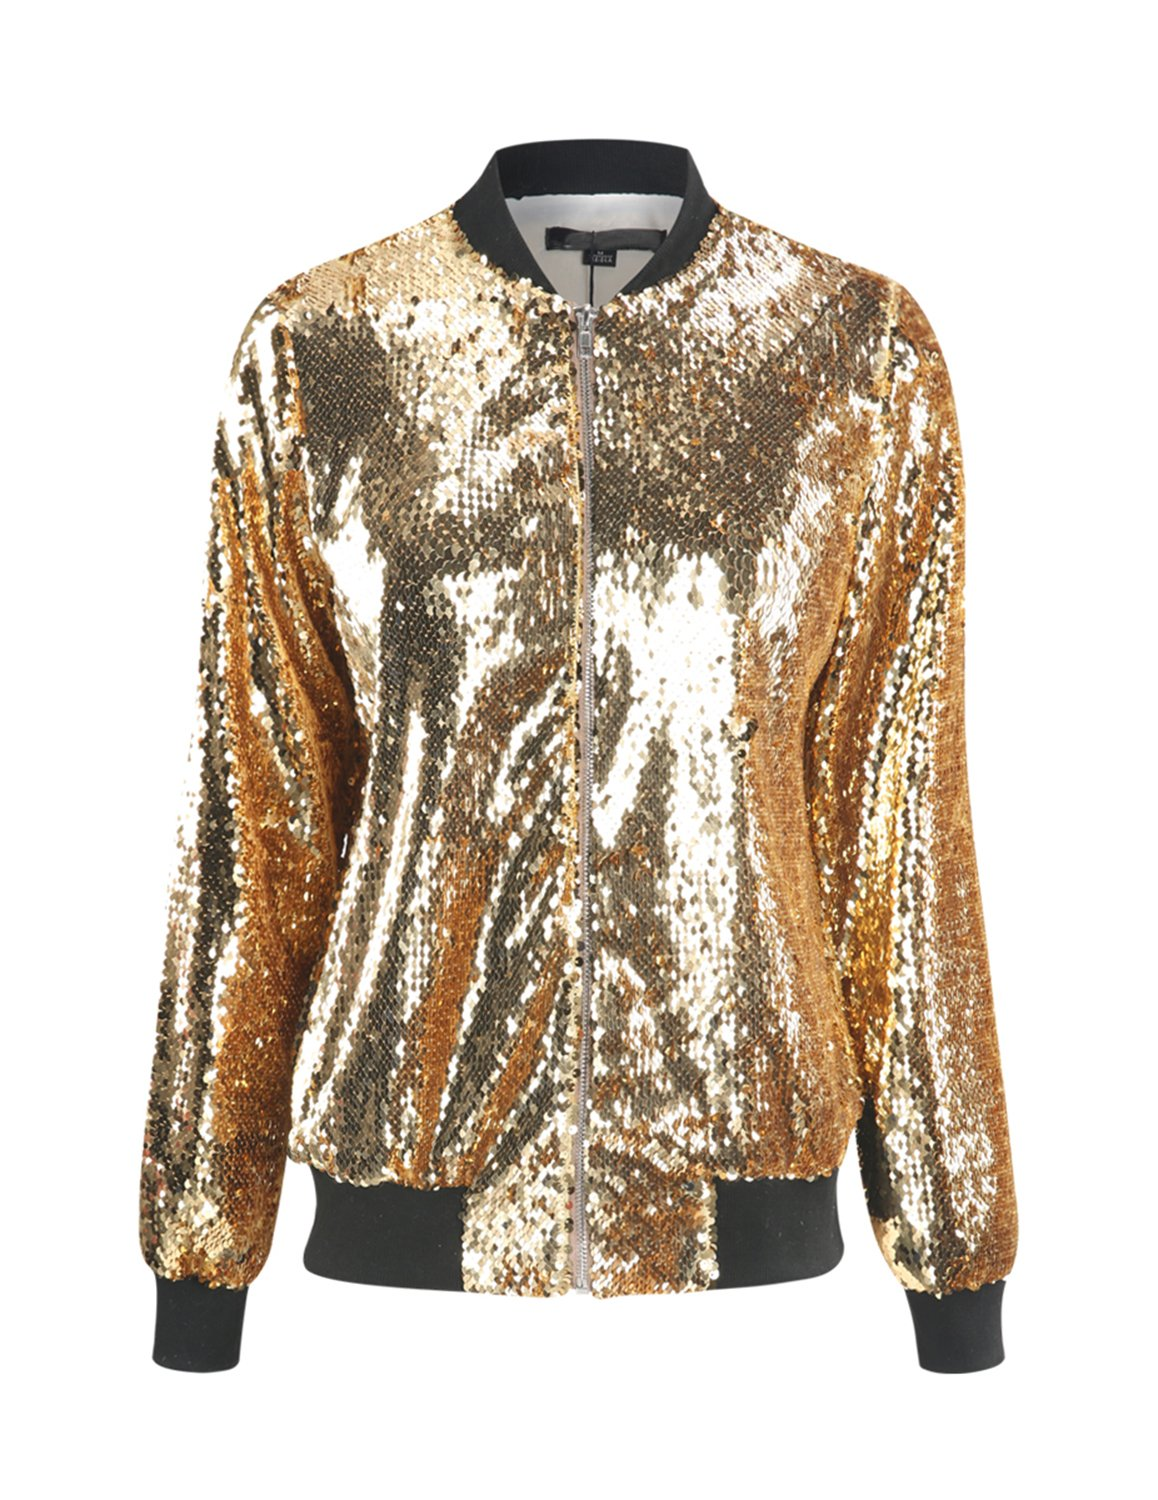 27d981bb16c8 HAOYIHUI Women s Mermaid Sequin Lightweight Zipper Bomber Jacket product  image